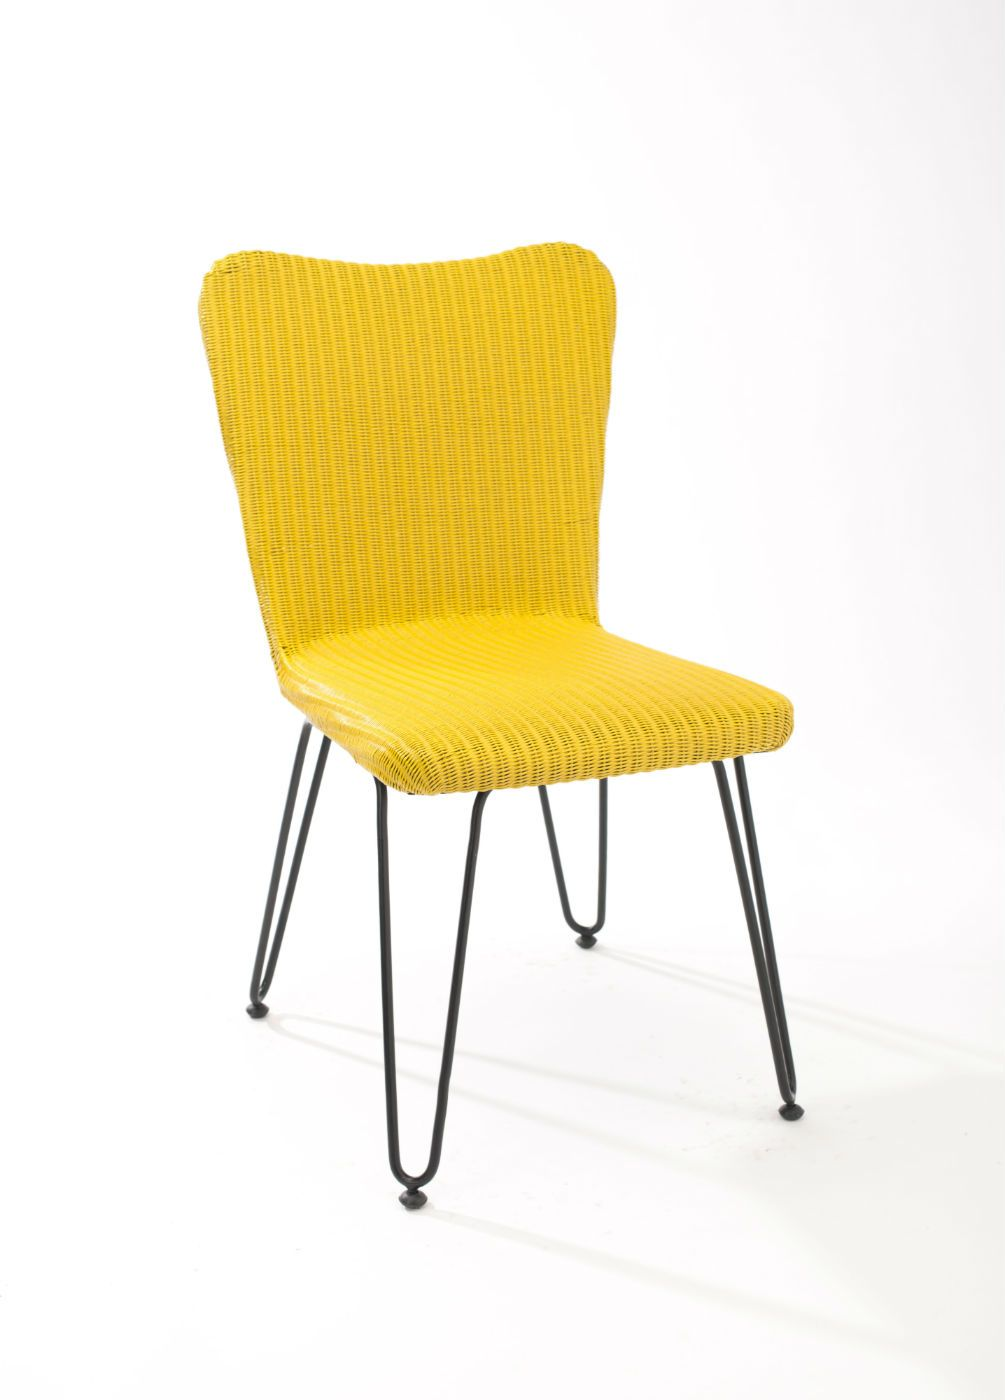 Chaise Style Scandinave Jaune Intrieur Pliante Meuble Agence Ouest